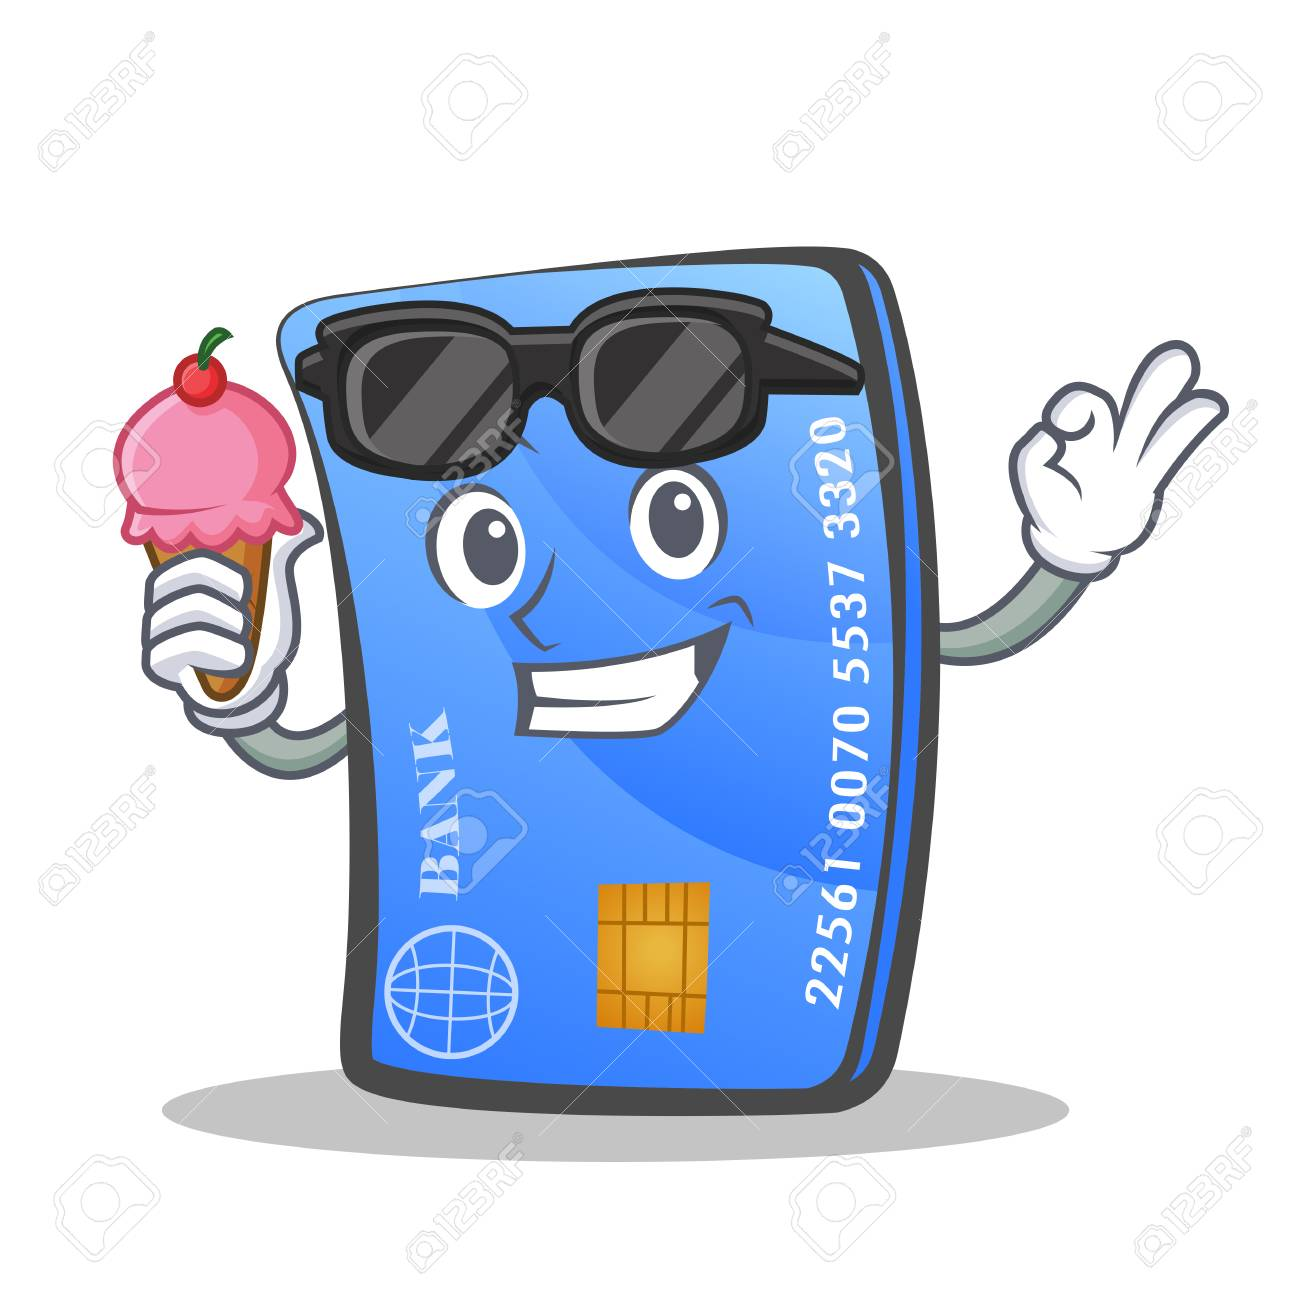 credit card character cartoon with ice cream royalty free cliparts